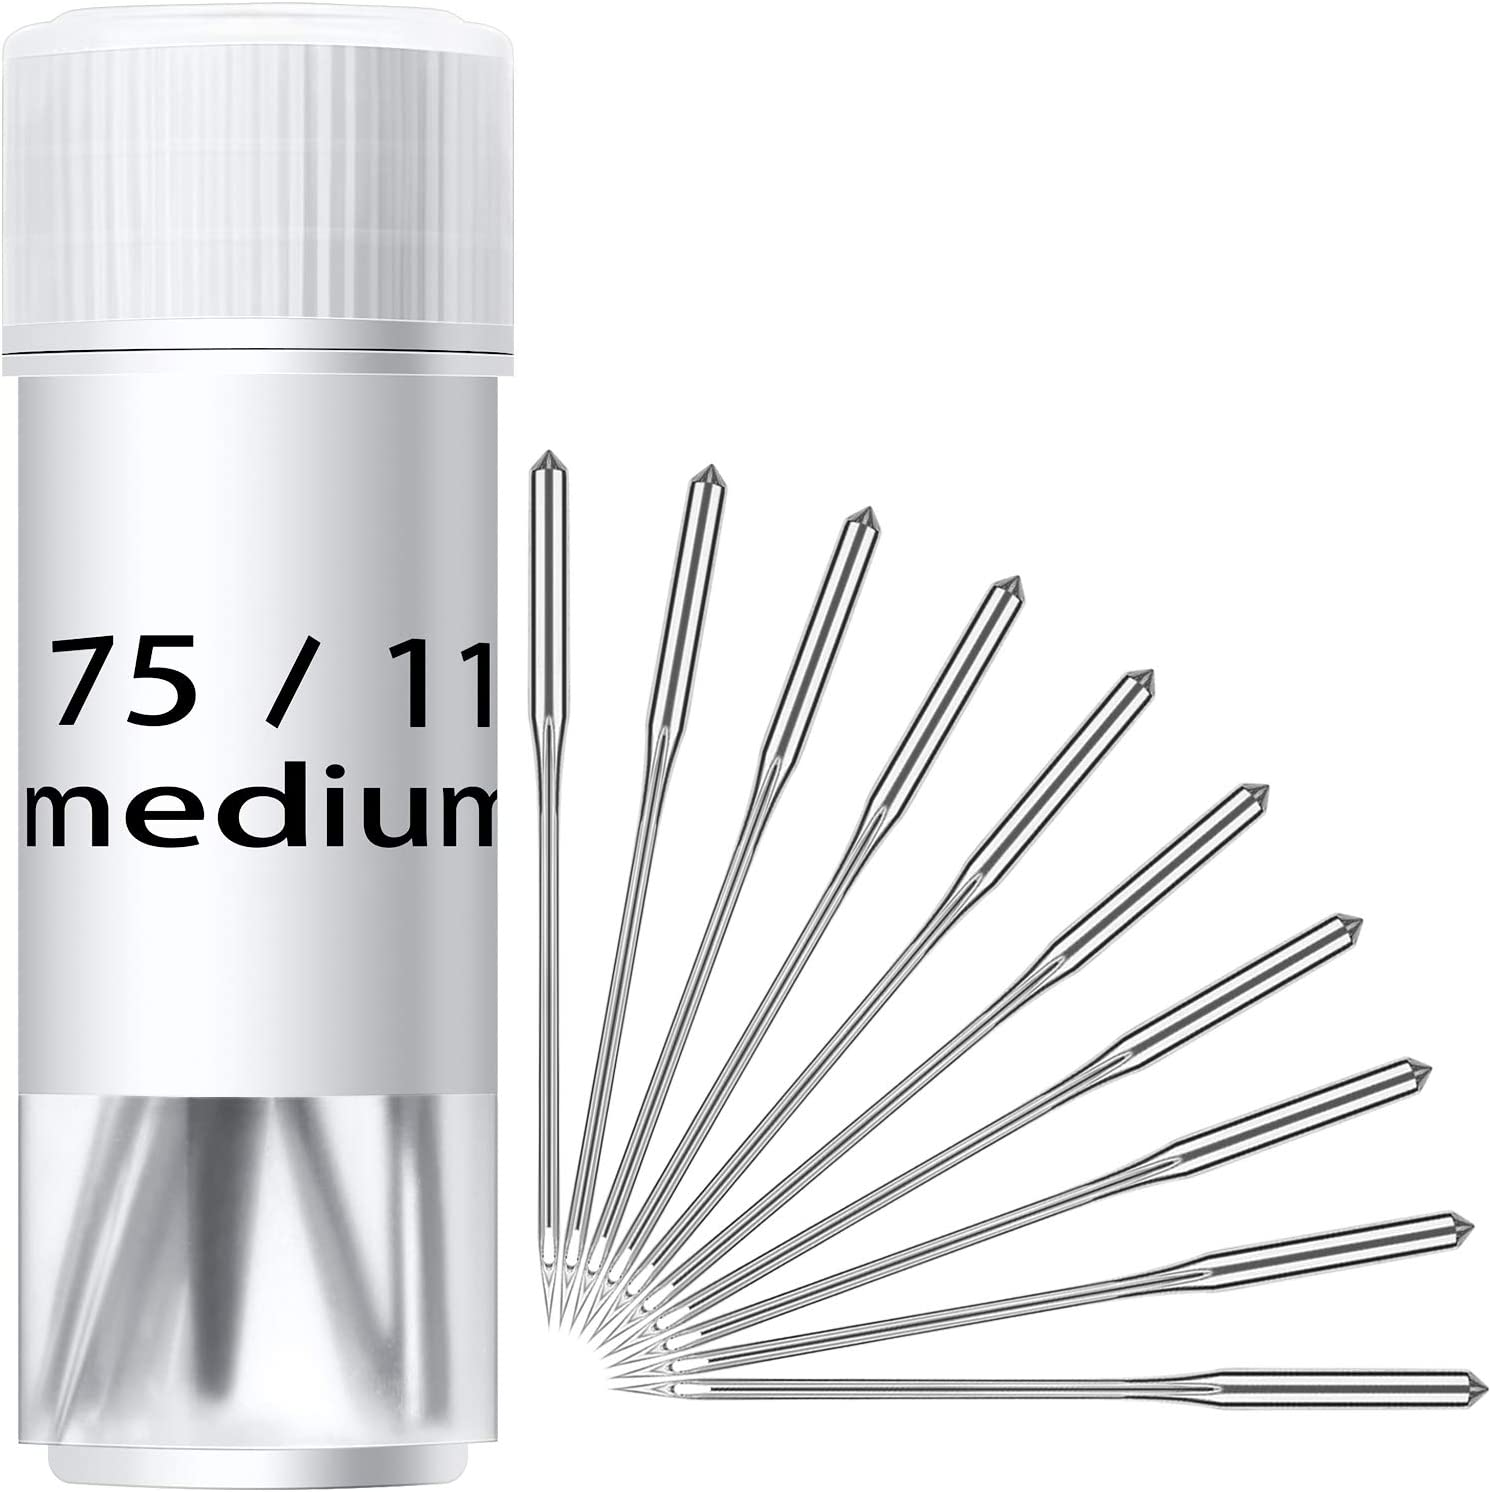 100 Pieces Sewing Needles Home Sewing Machine Needles Size 9, 11, 14, 16, 18, with Needle Bottles with Labels for Singer, Brother, Janome, Varmax 71ZEOOTrApL